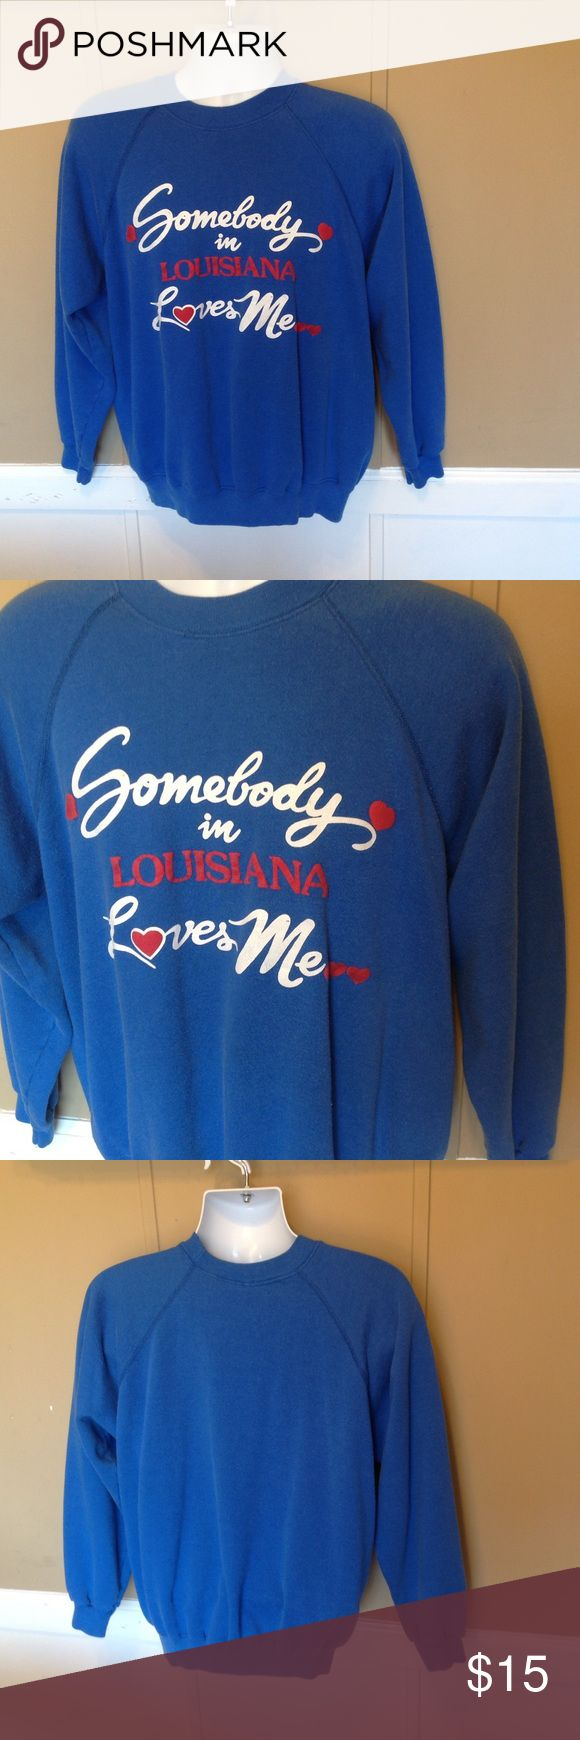 "Vintage 80s SOMEONE Loves Me Sweatshirt Maker: Hanes  ♥  Material: 50/50 Poly Cotton  ♥  Color: Royal Blue  ♥  Measured Size:  Pit to pit- 22""  Pit to cuff-19""  Shoulder to waist-25""  ♥  Tag Size:Xl  ♥  Actual Size: Adult Large   PLEASE CHECK YOUR ACTUAL MEASUREMENTS TO MAKE SURE IT IS THE RIGHT SIZE! THANKS!  ♥ Condition: Great Hanes Tops Sweatshirts & Hoodies"